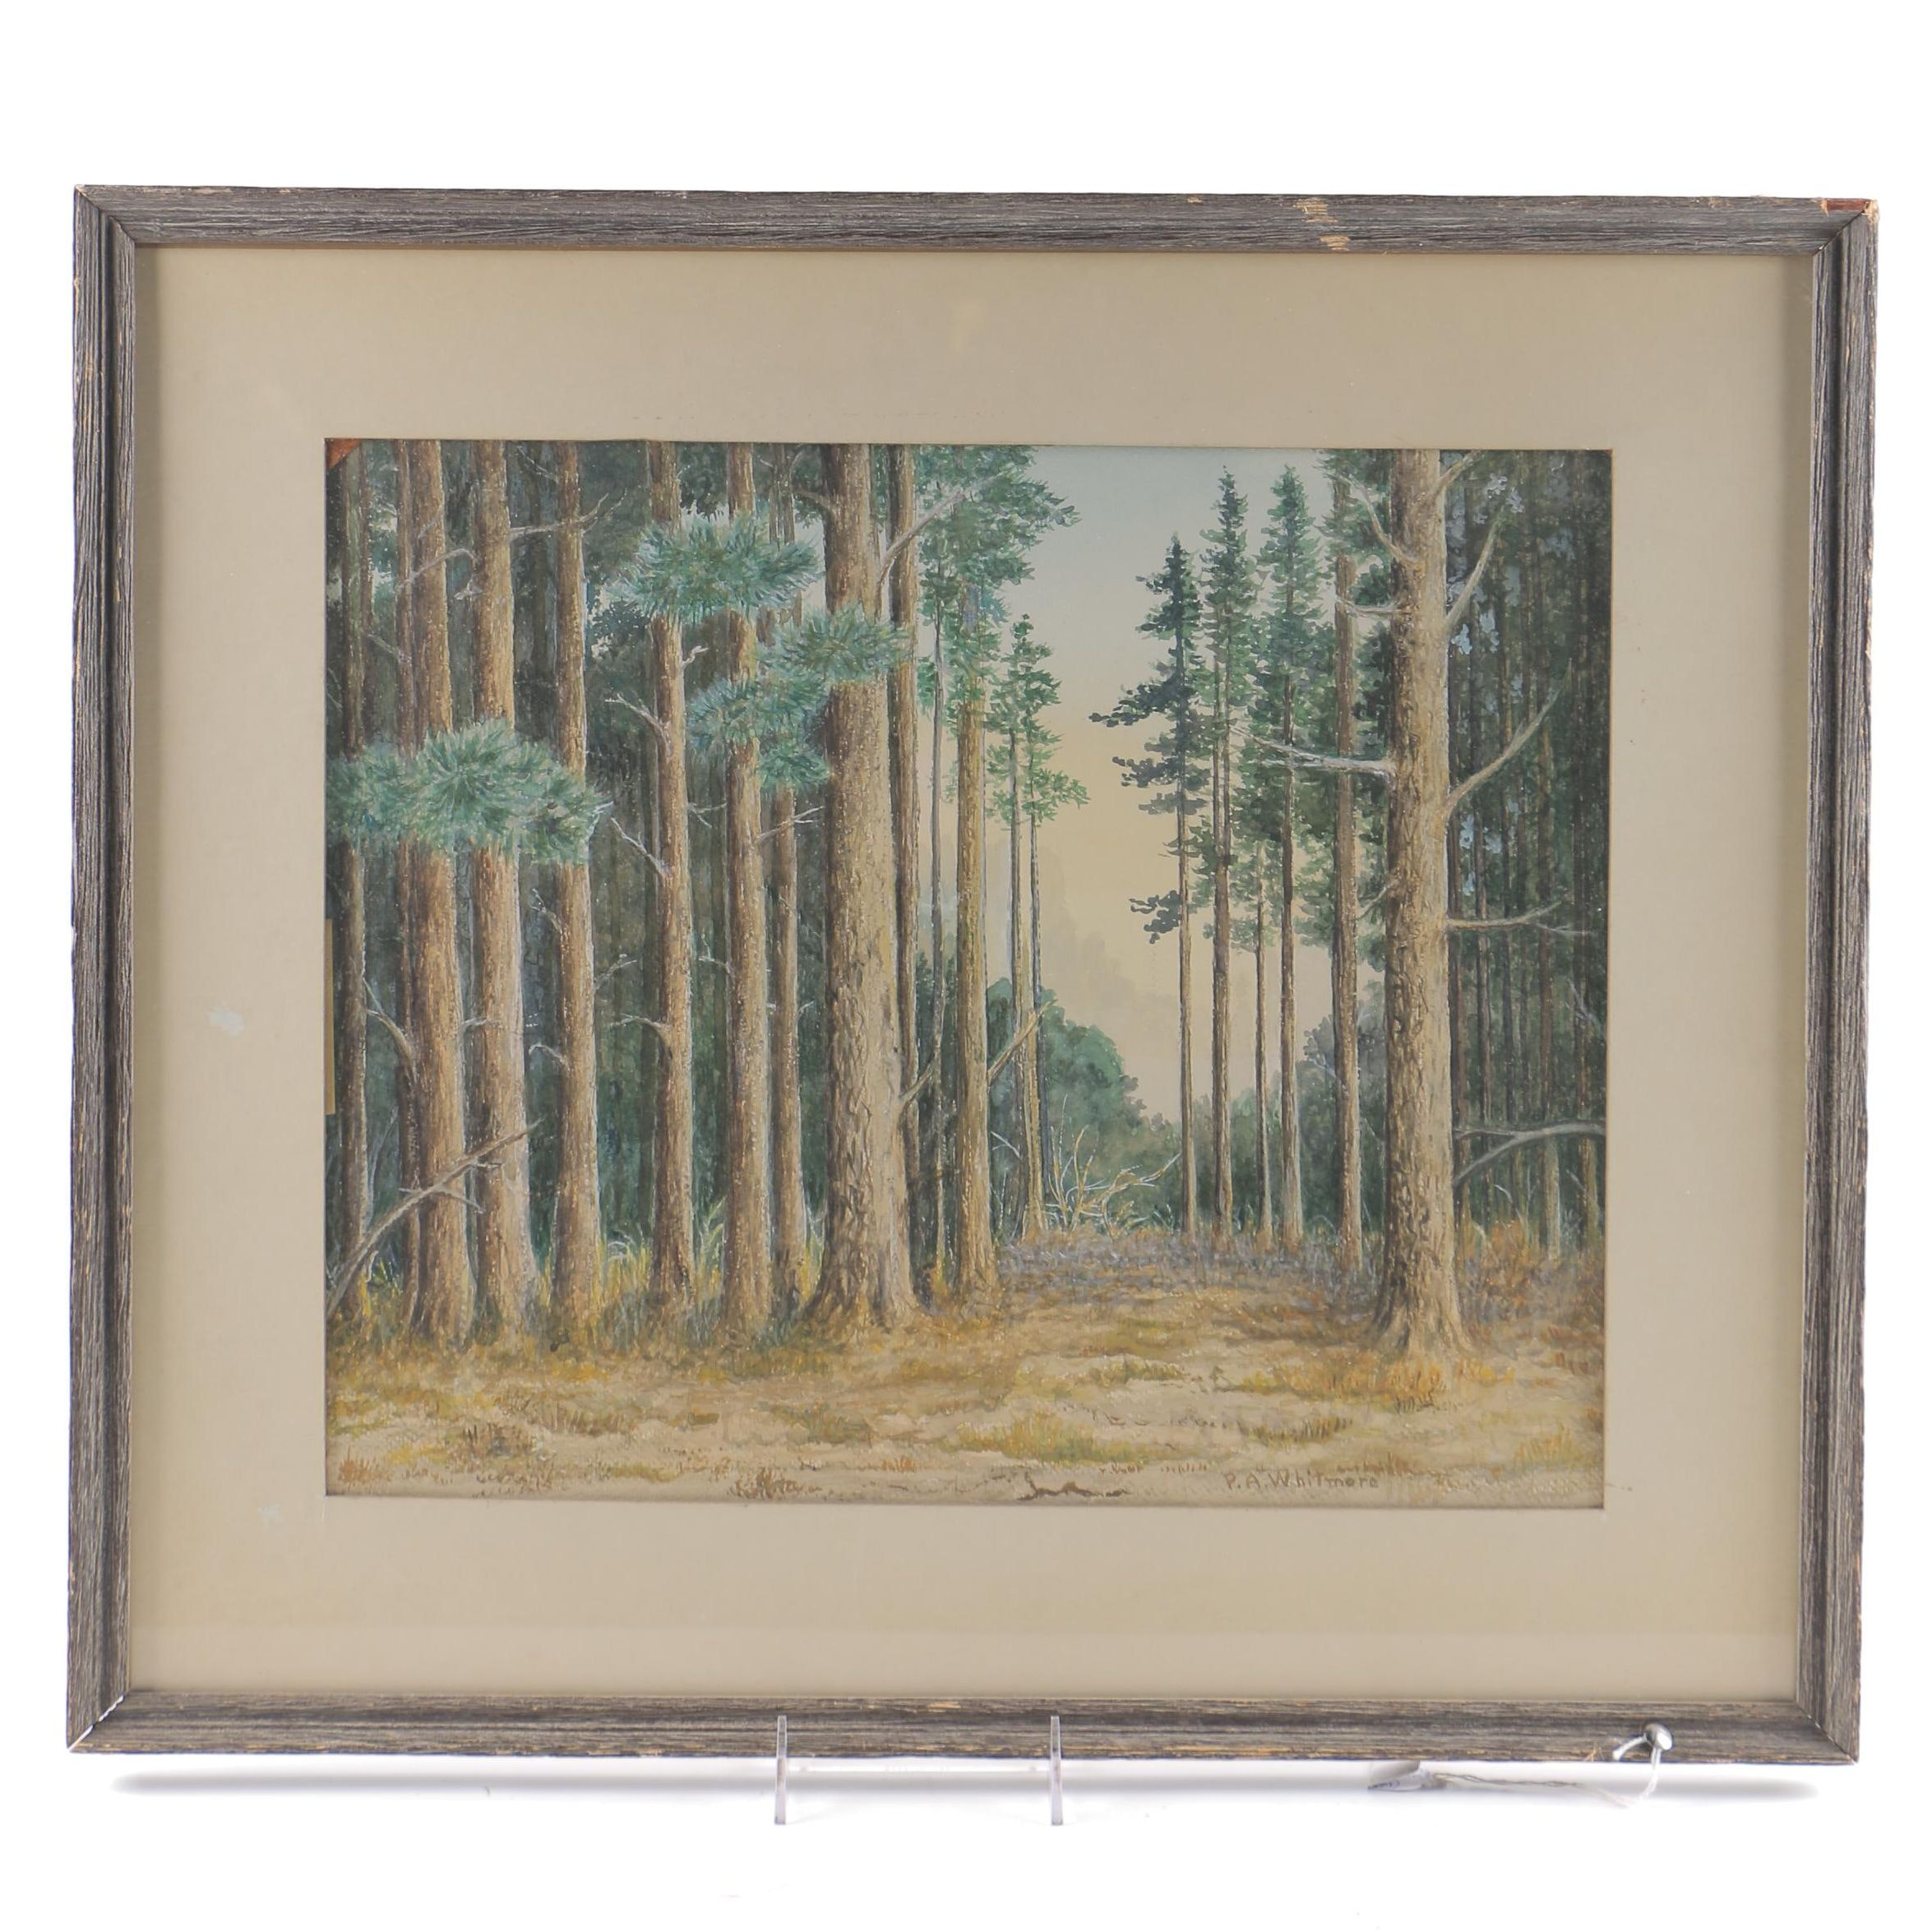 P. A. Whitmore Watercolor Painting of a Landscape Scene